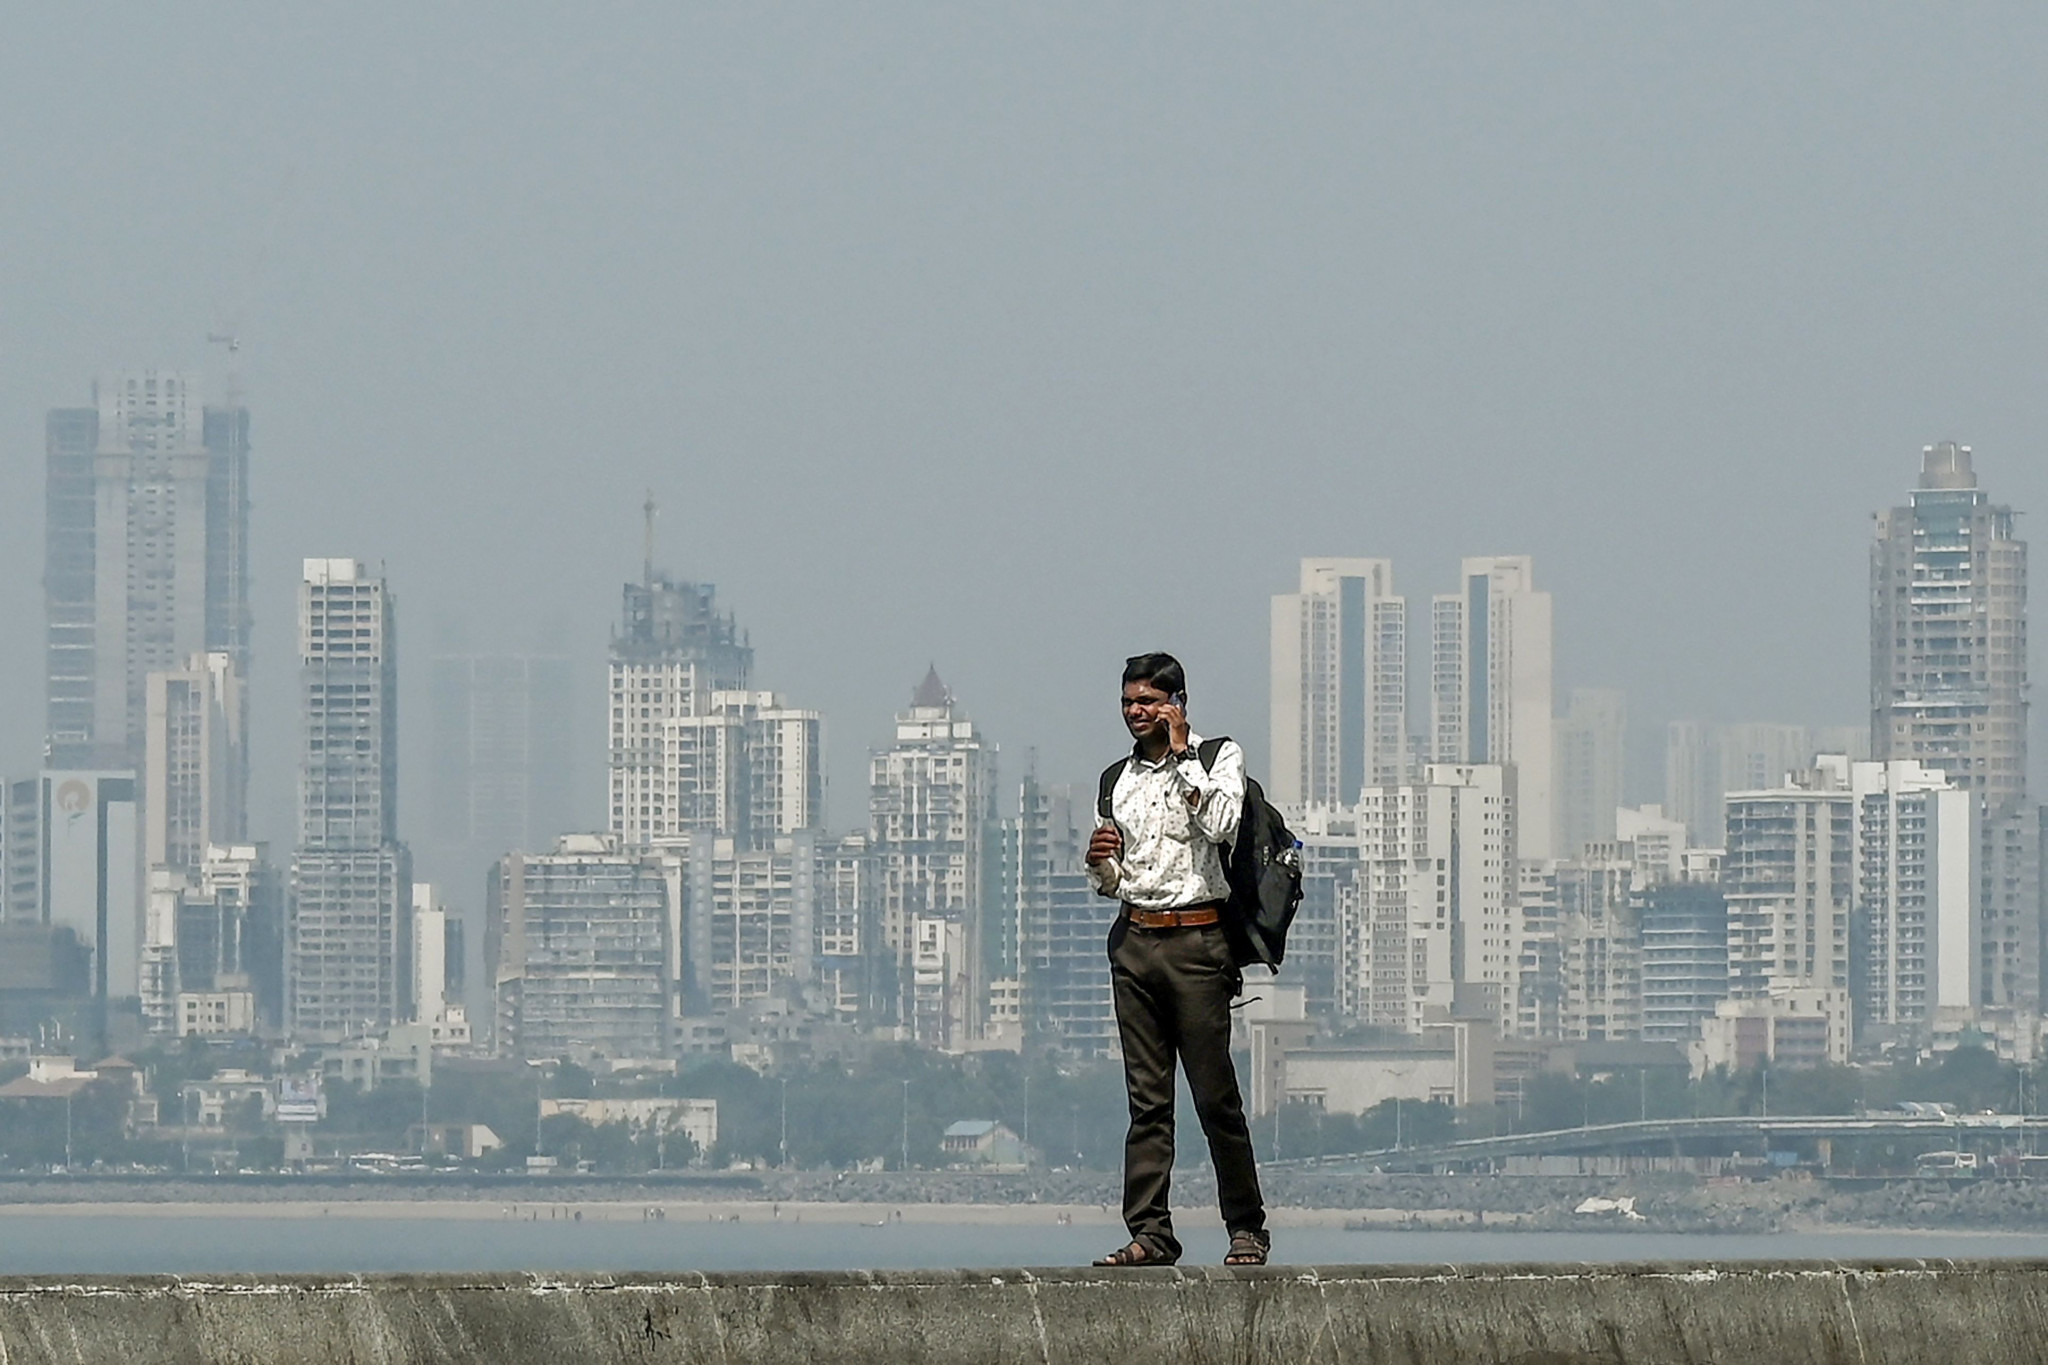 Mumbai has been proposed as host of the 2023 International Olympic Committee Session ©Getty Images